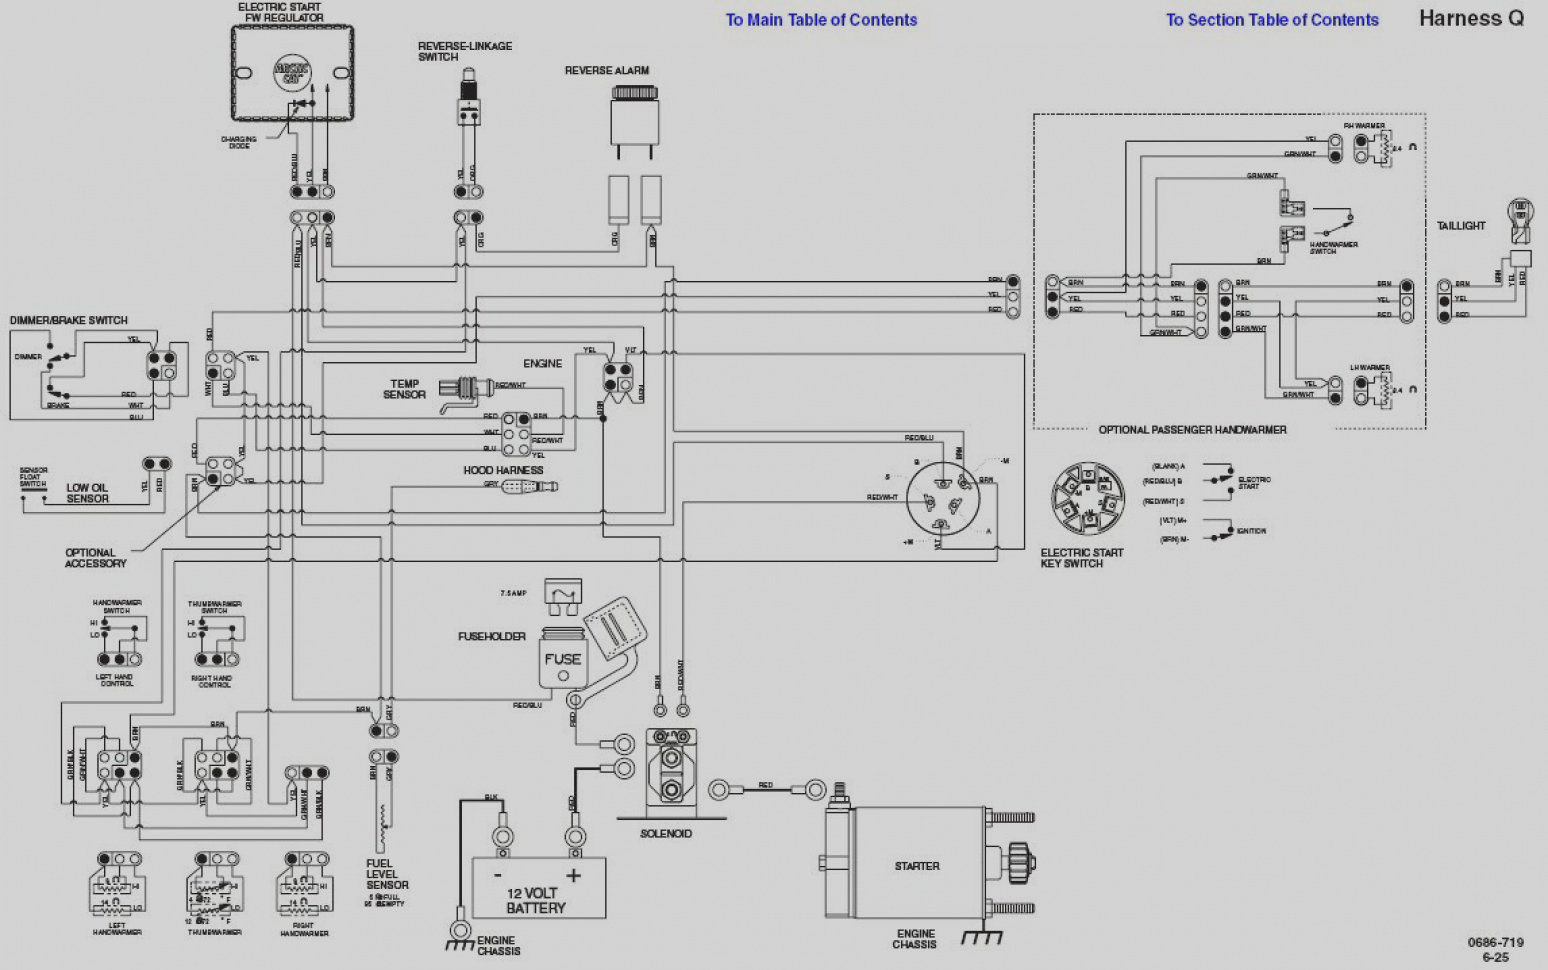 polaris ranger wiring diagram inspirational 2010 polaris ranger 800 xp wiring diagram 2011 diagrams schematics 2c trane rooftop unit wiring diagram sample wiring diagram sample